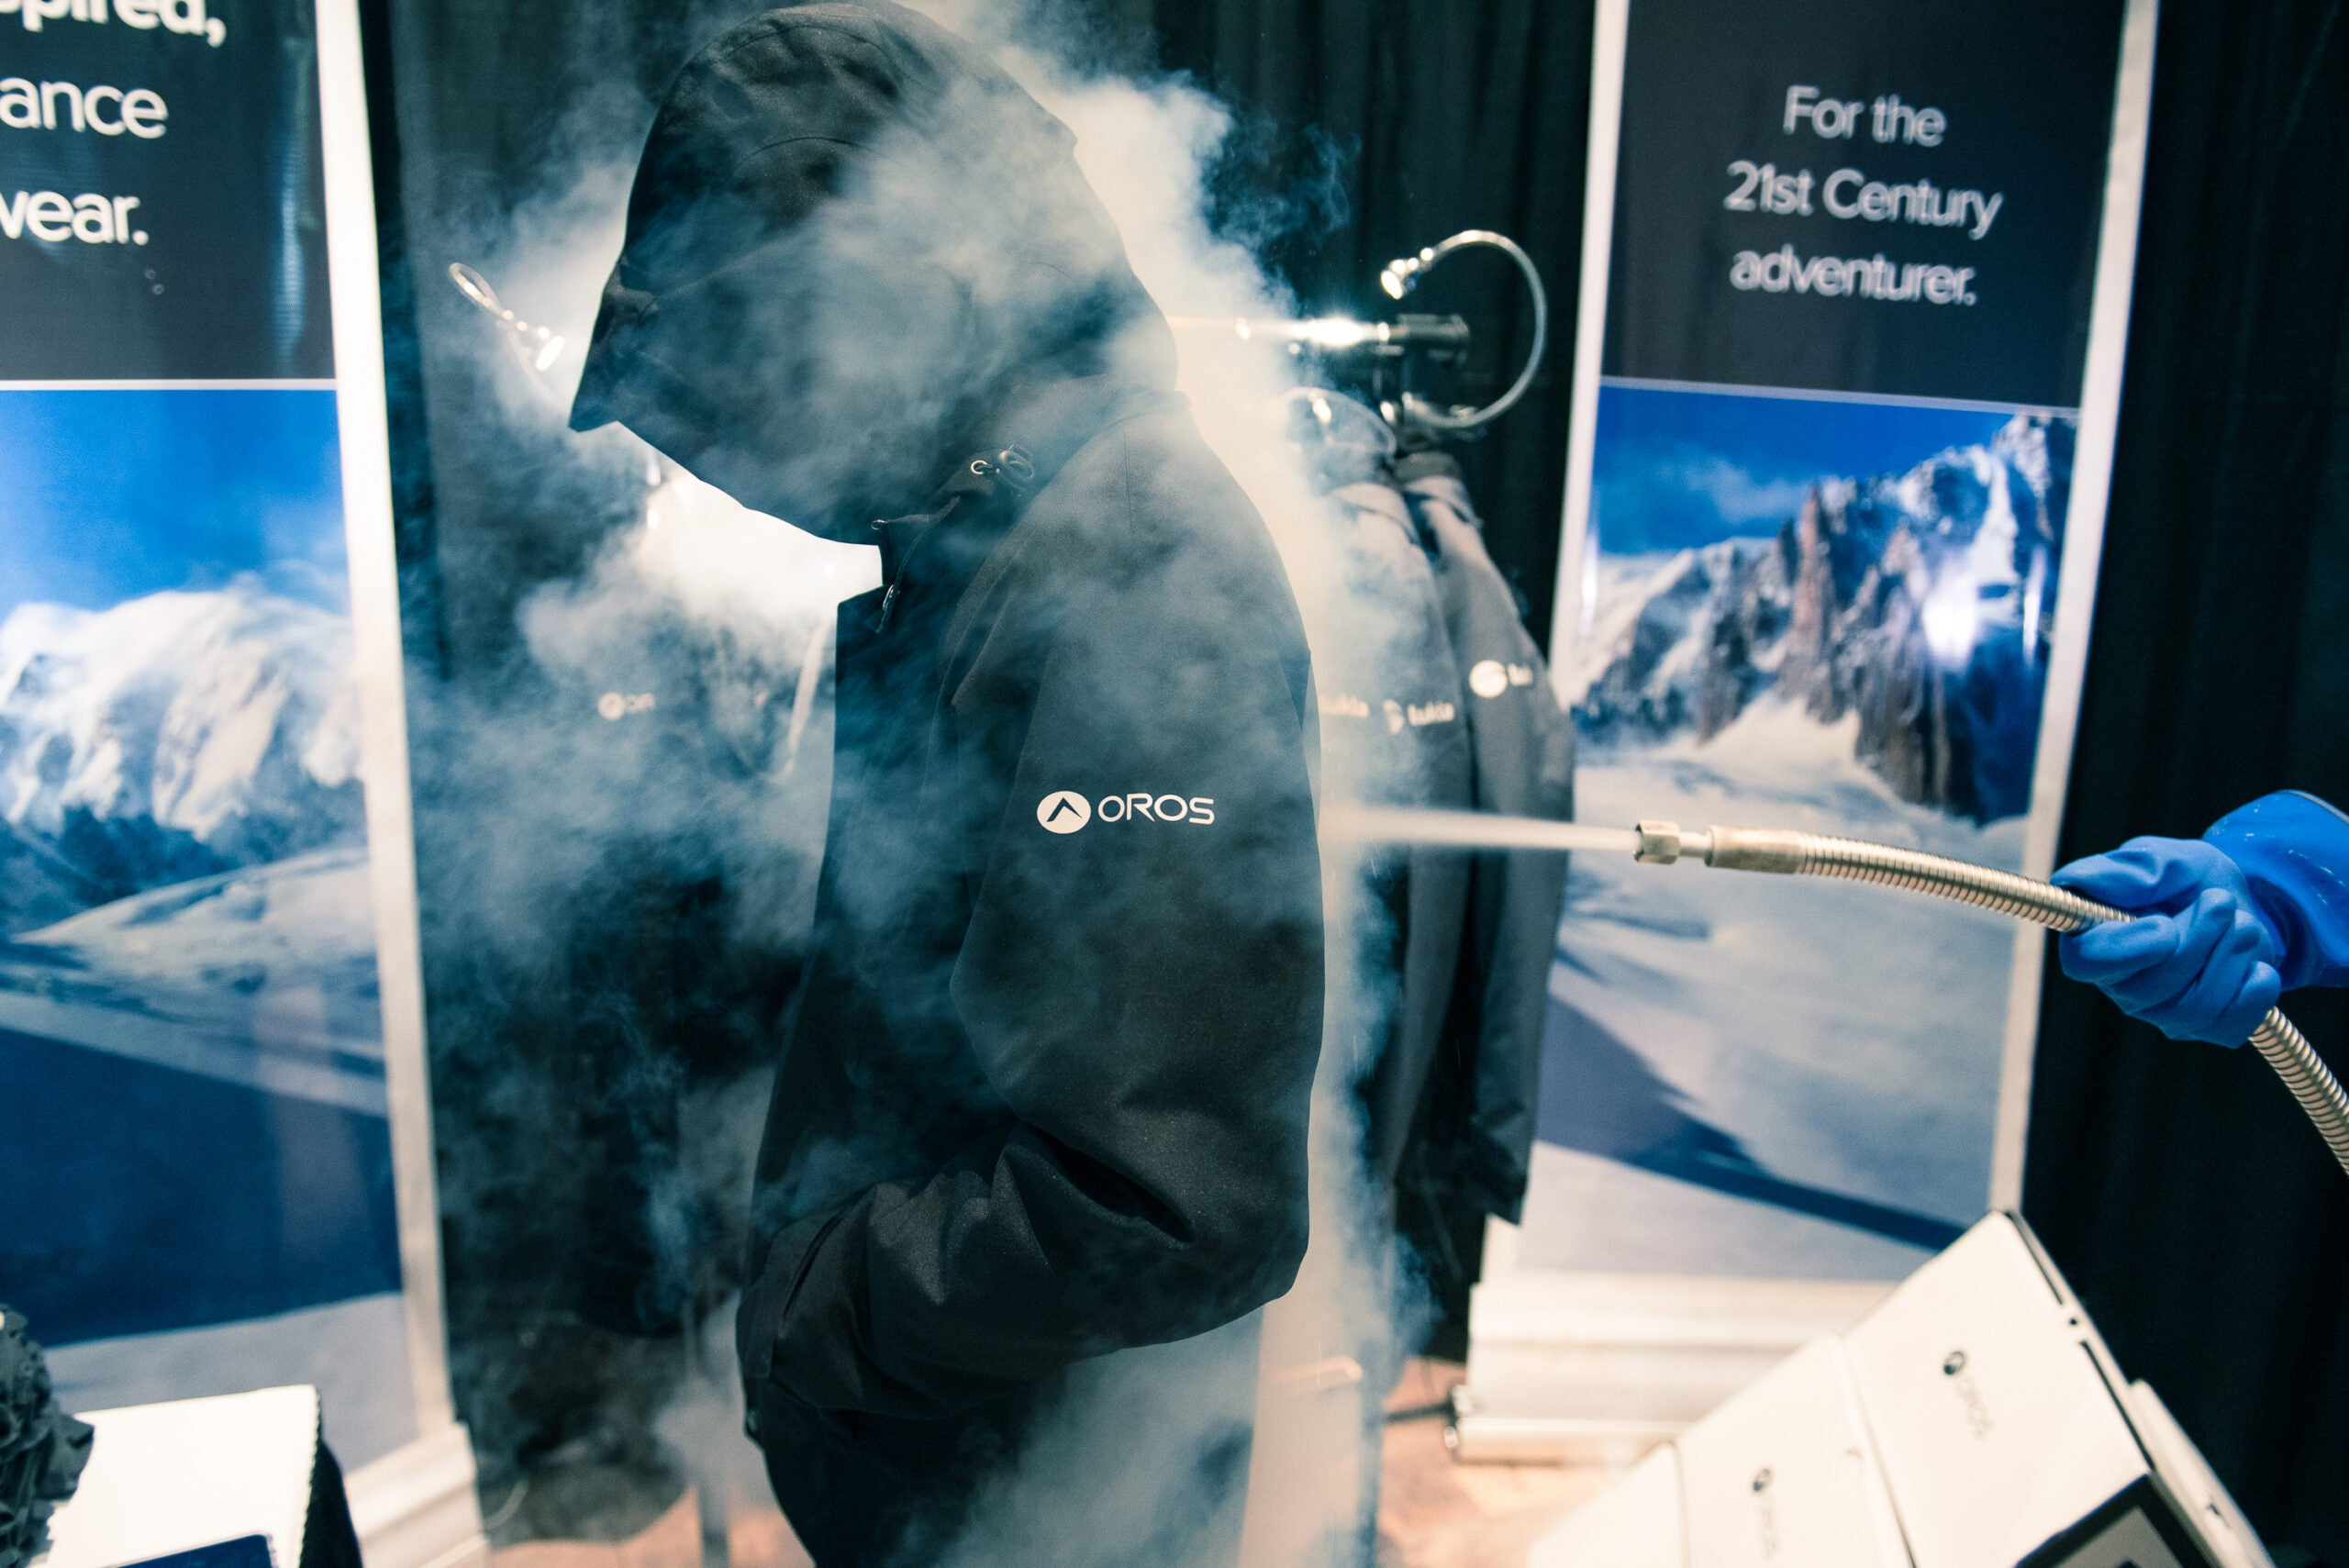 Clothing Insulated With Aerogel Promises To Keep Out The Most Dire Cold